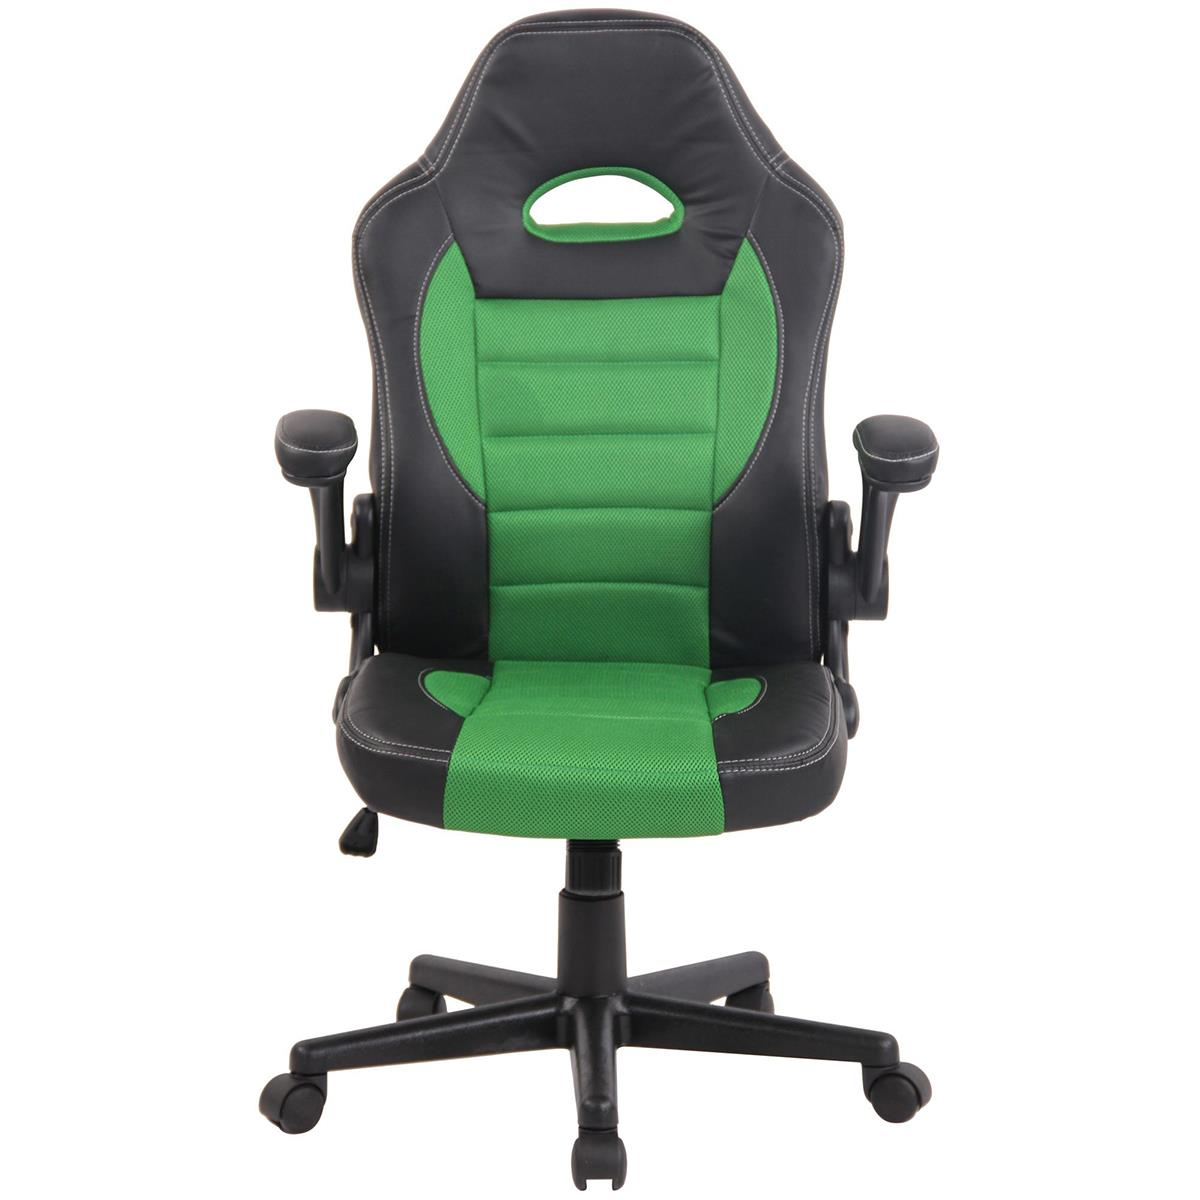 Chaise Gamer Et LotusAccoudoirs RelevablesCuir RespirableVert Maille 29HEDI